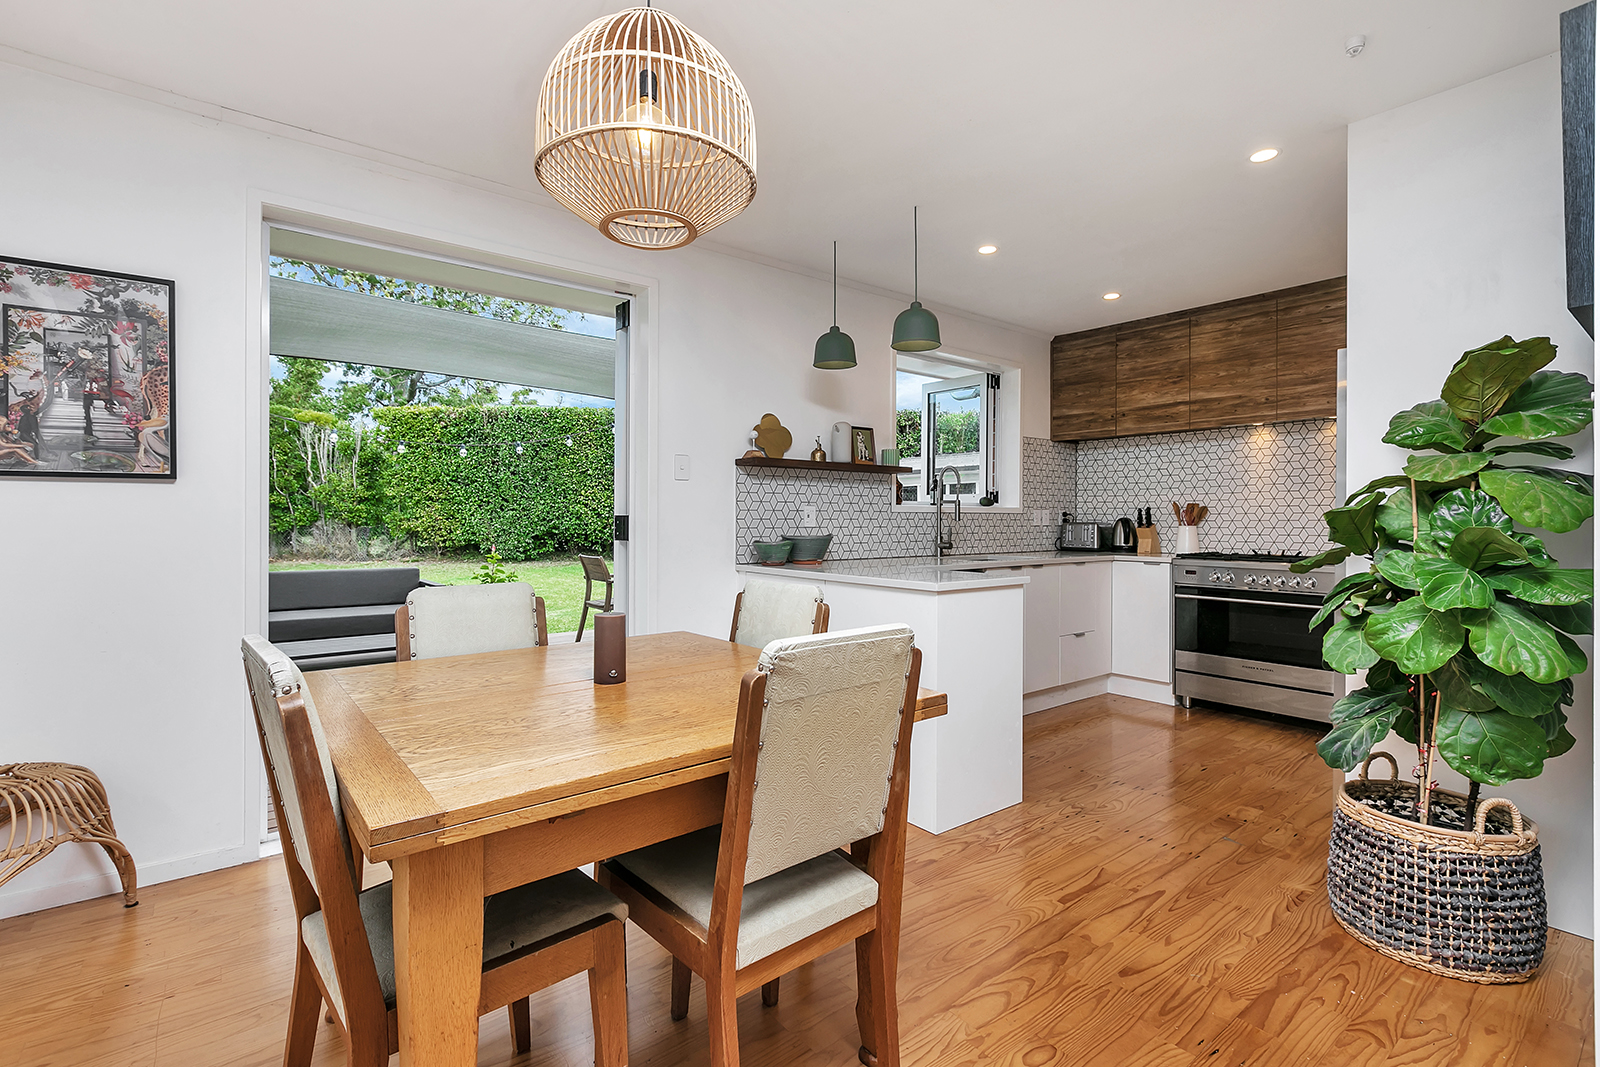 BUNGALOW LOVERS. RENOVATED RED BRICK CLASSIC!